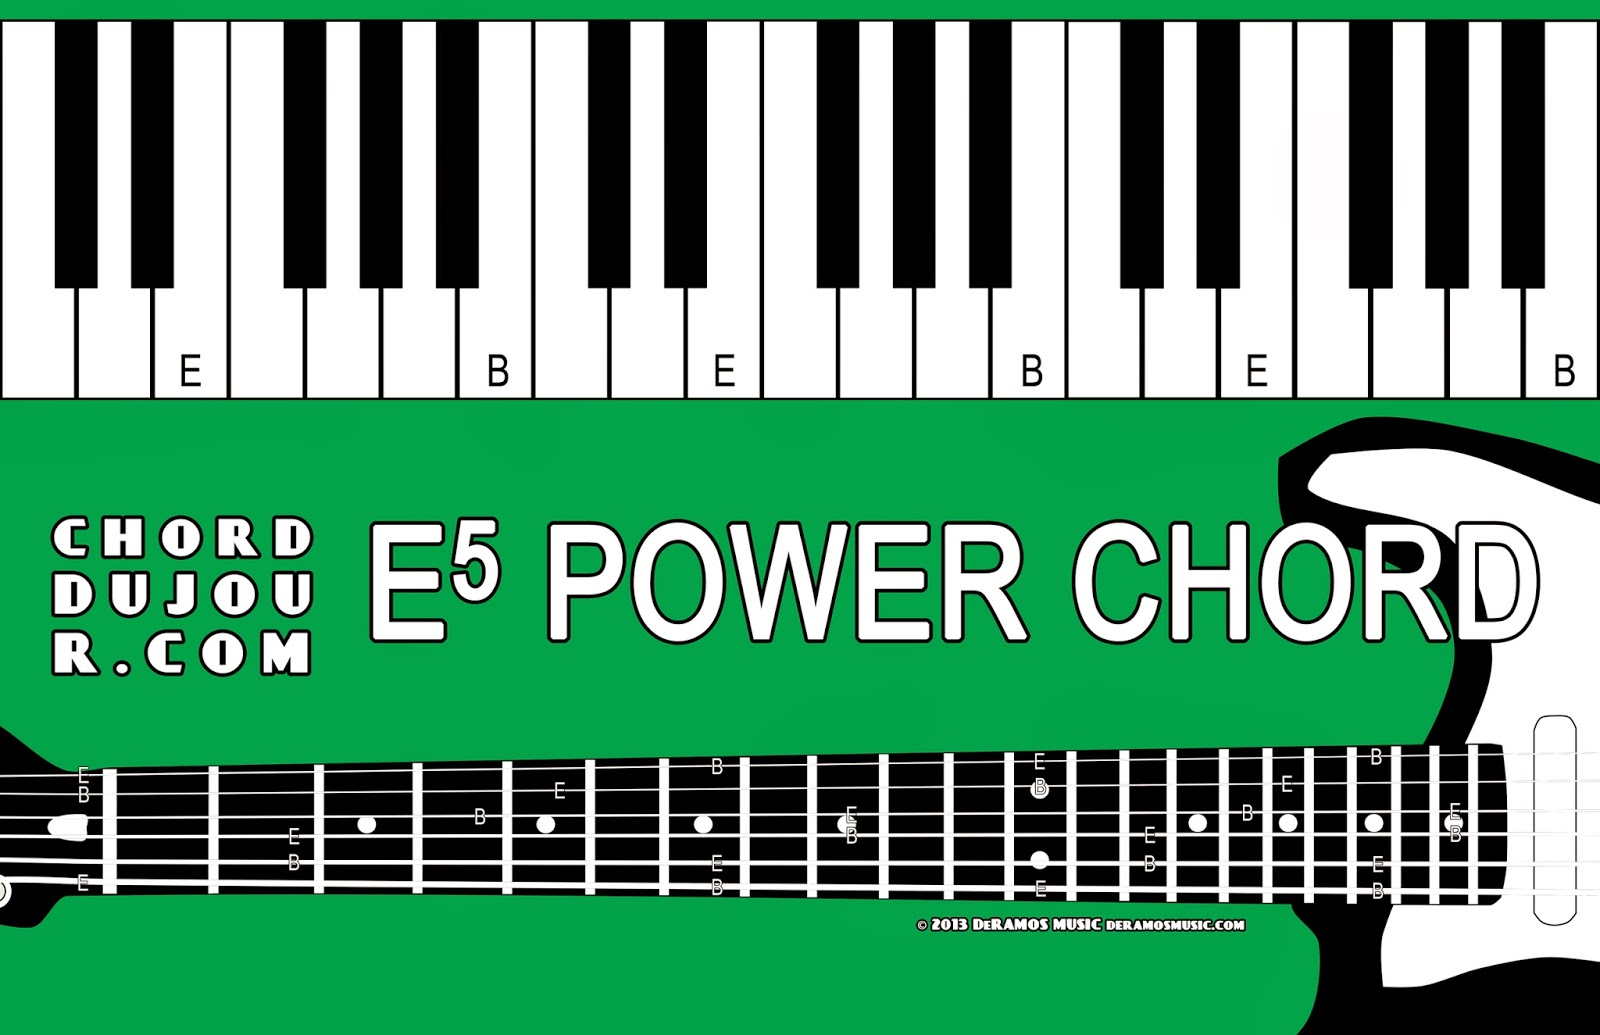 Chord Du Jour Dictionary E5 Power Chord